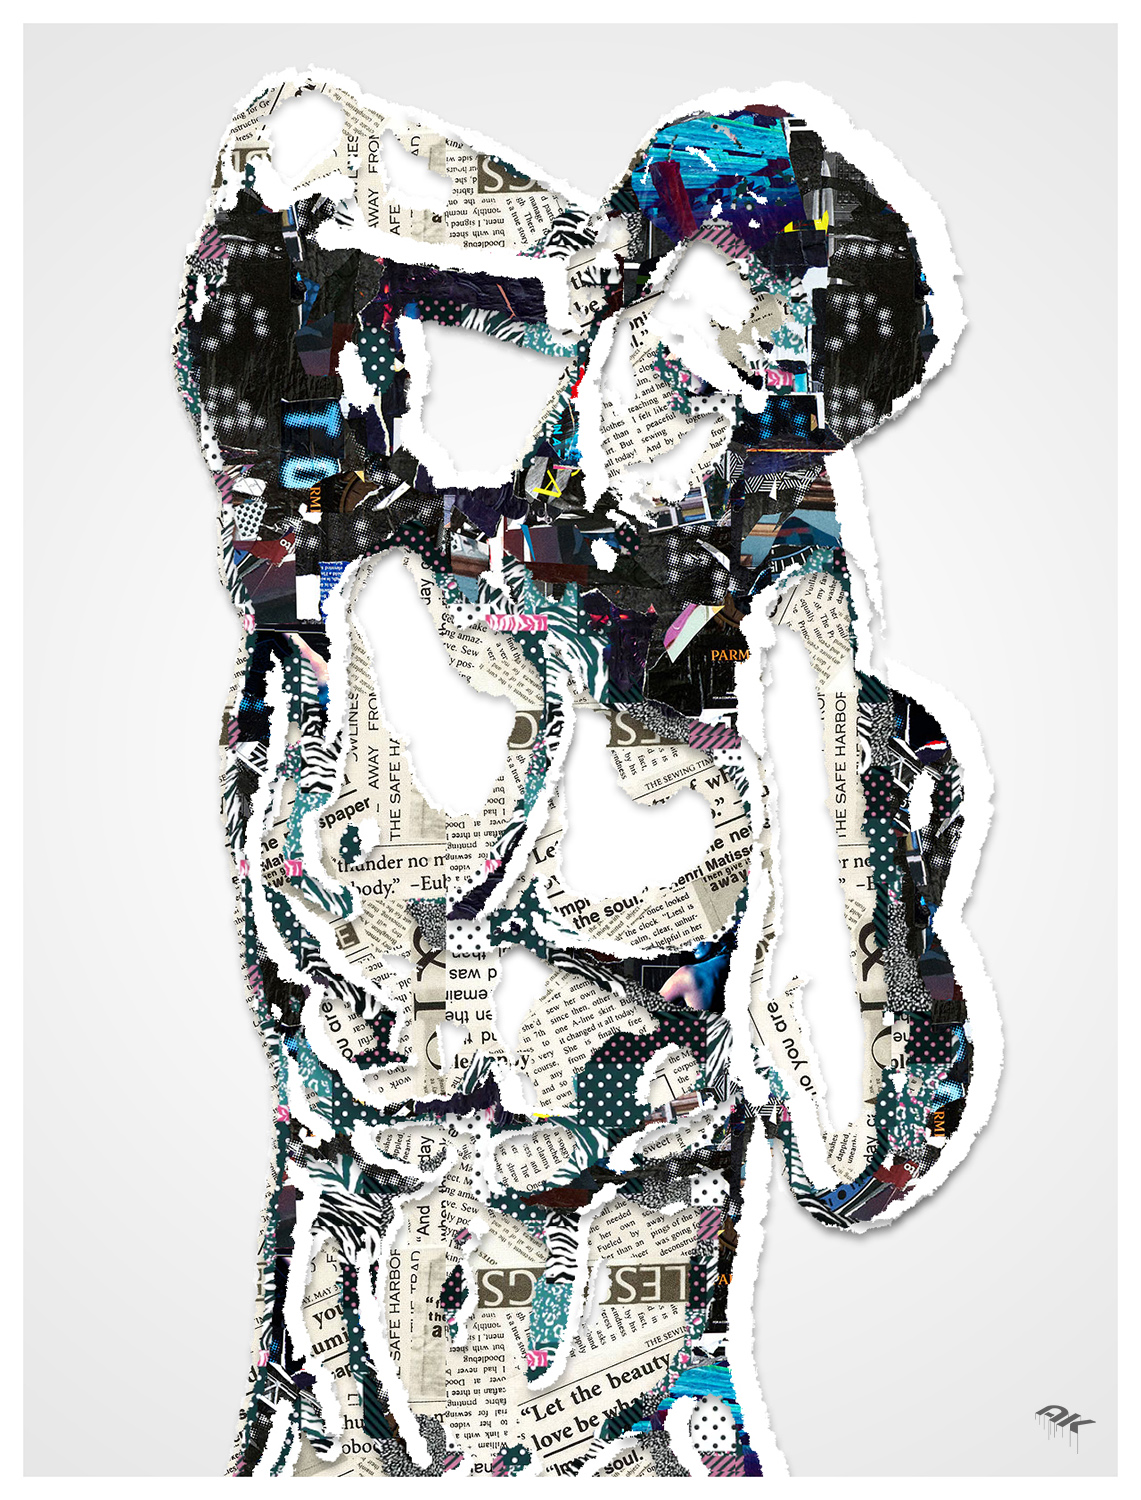 collage-portraits-4-copyright-andrew-knutt